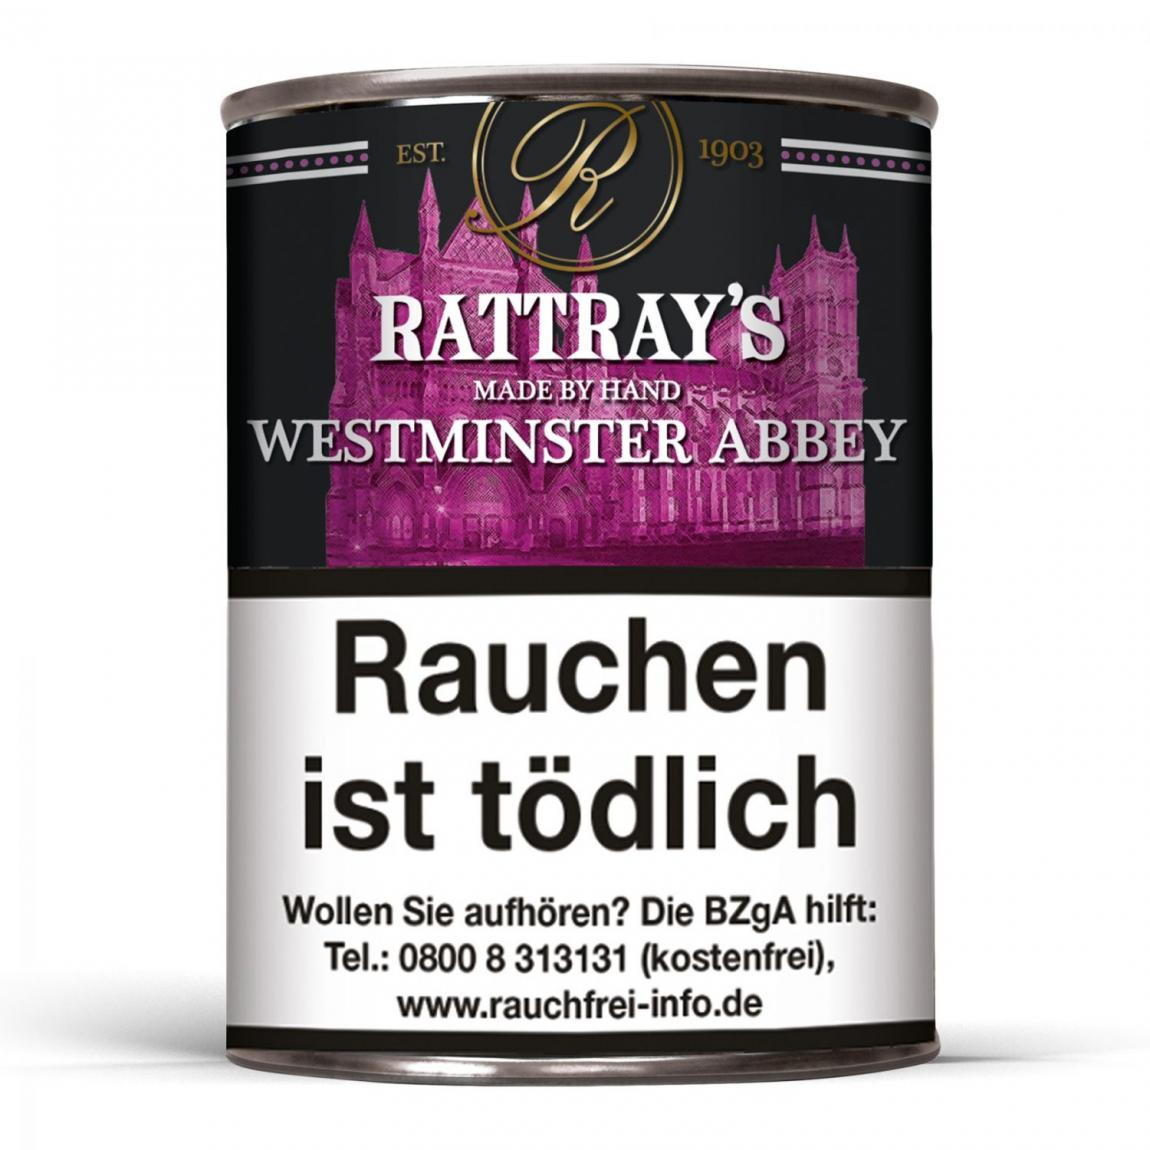 Rattray's Westminster Abbey 100g Dose